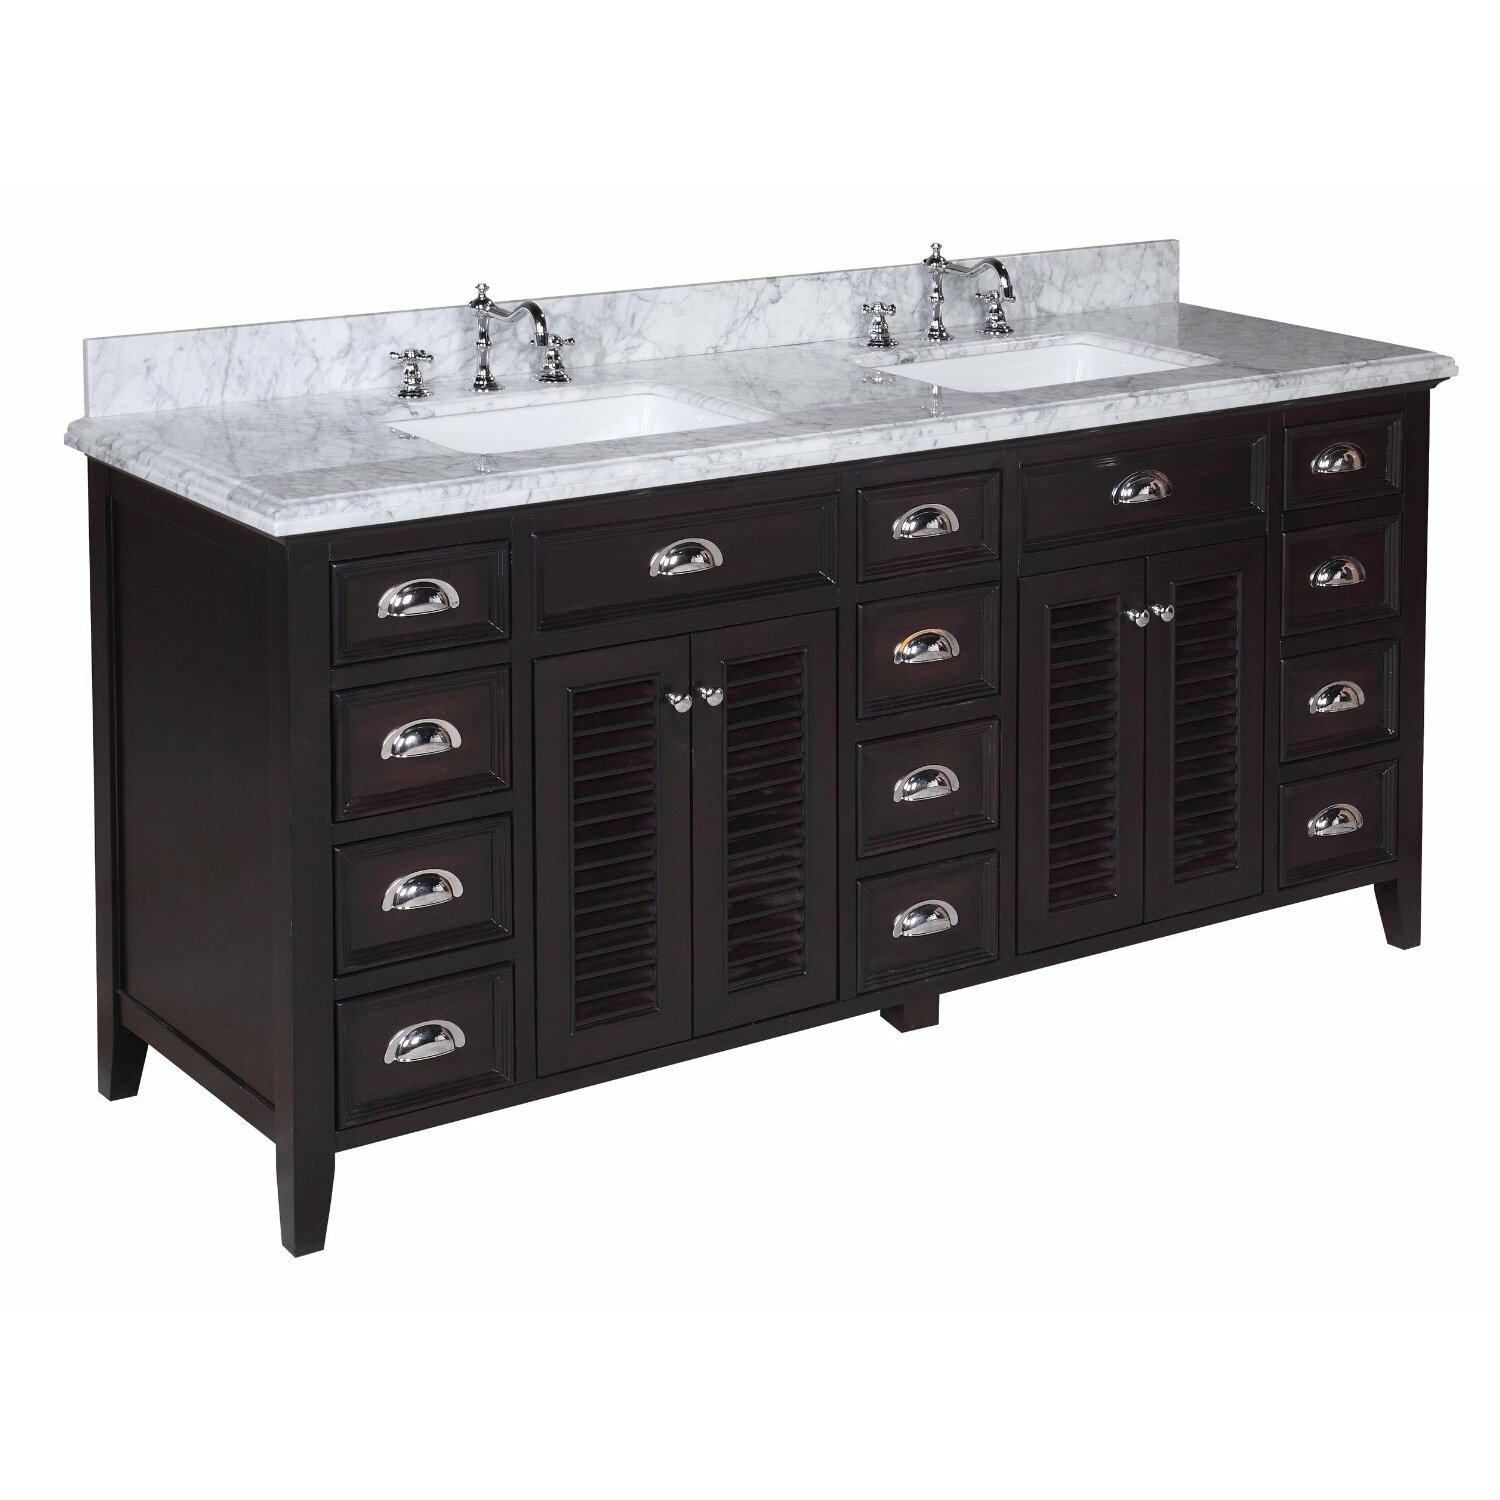 Kbc savannah 72 double bathroom vanity set reviews for Bath and vanity set